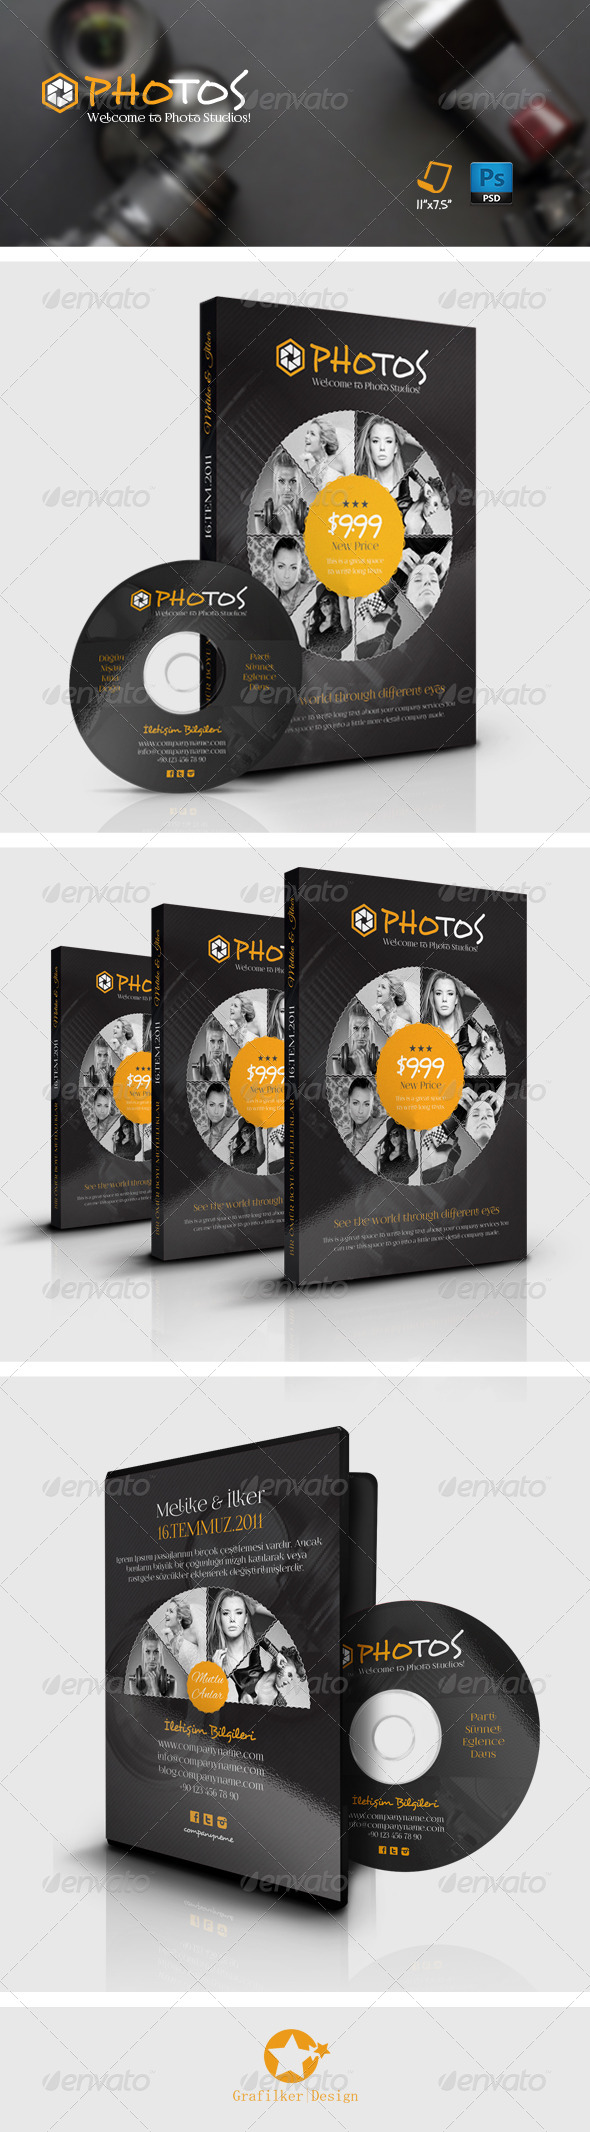 GraphicRiver Photography Dvd Cover Templates 7797282